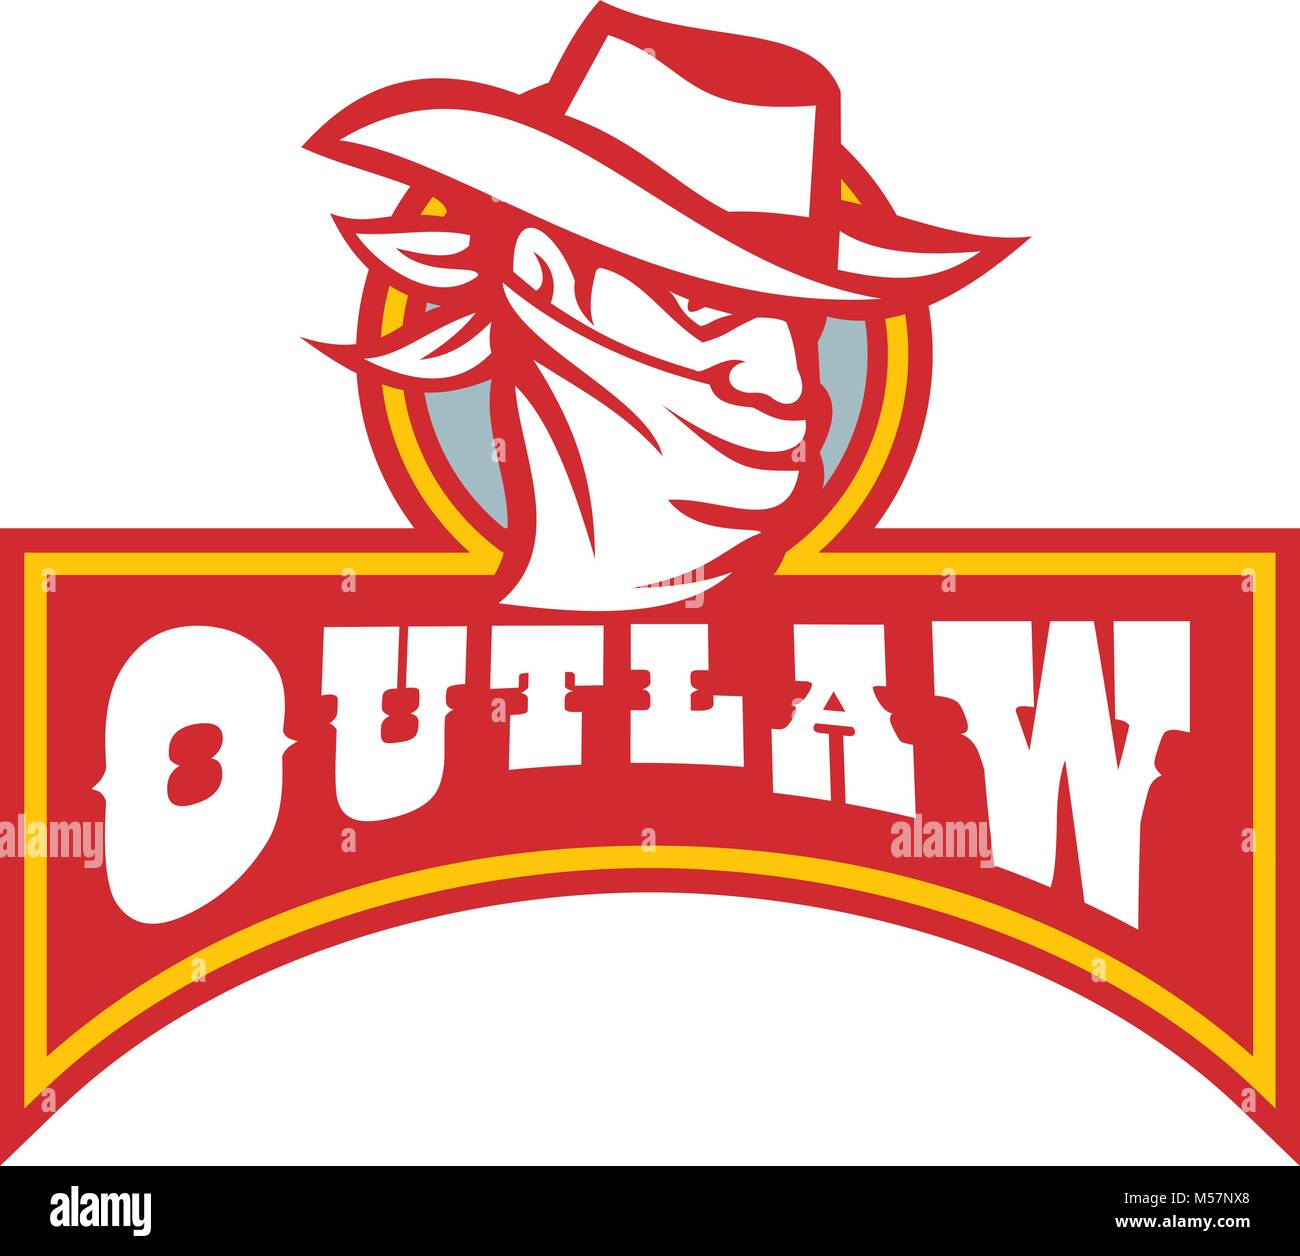 Retro Style Illustration Of A Cowboy Outlaw Or Bandit Wearing Bandana Covering His Face With Banner And Text On Isolated Background